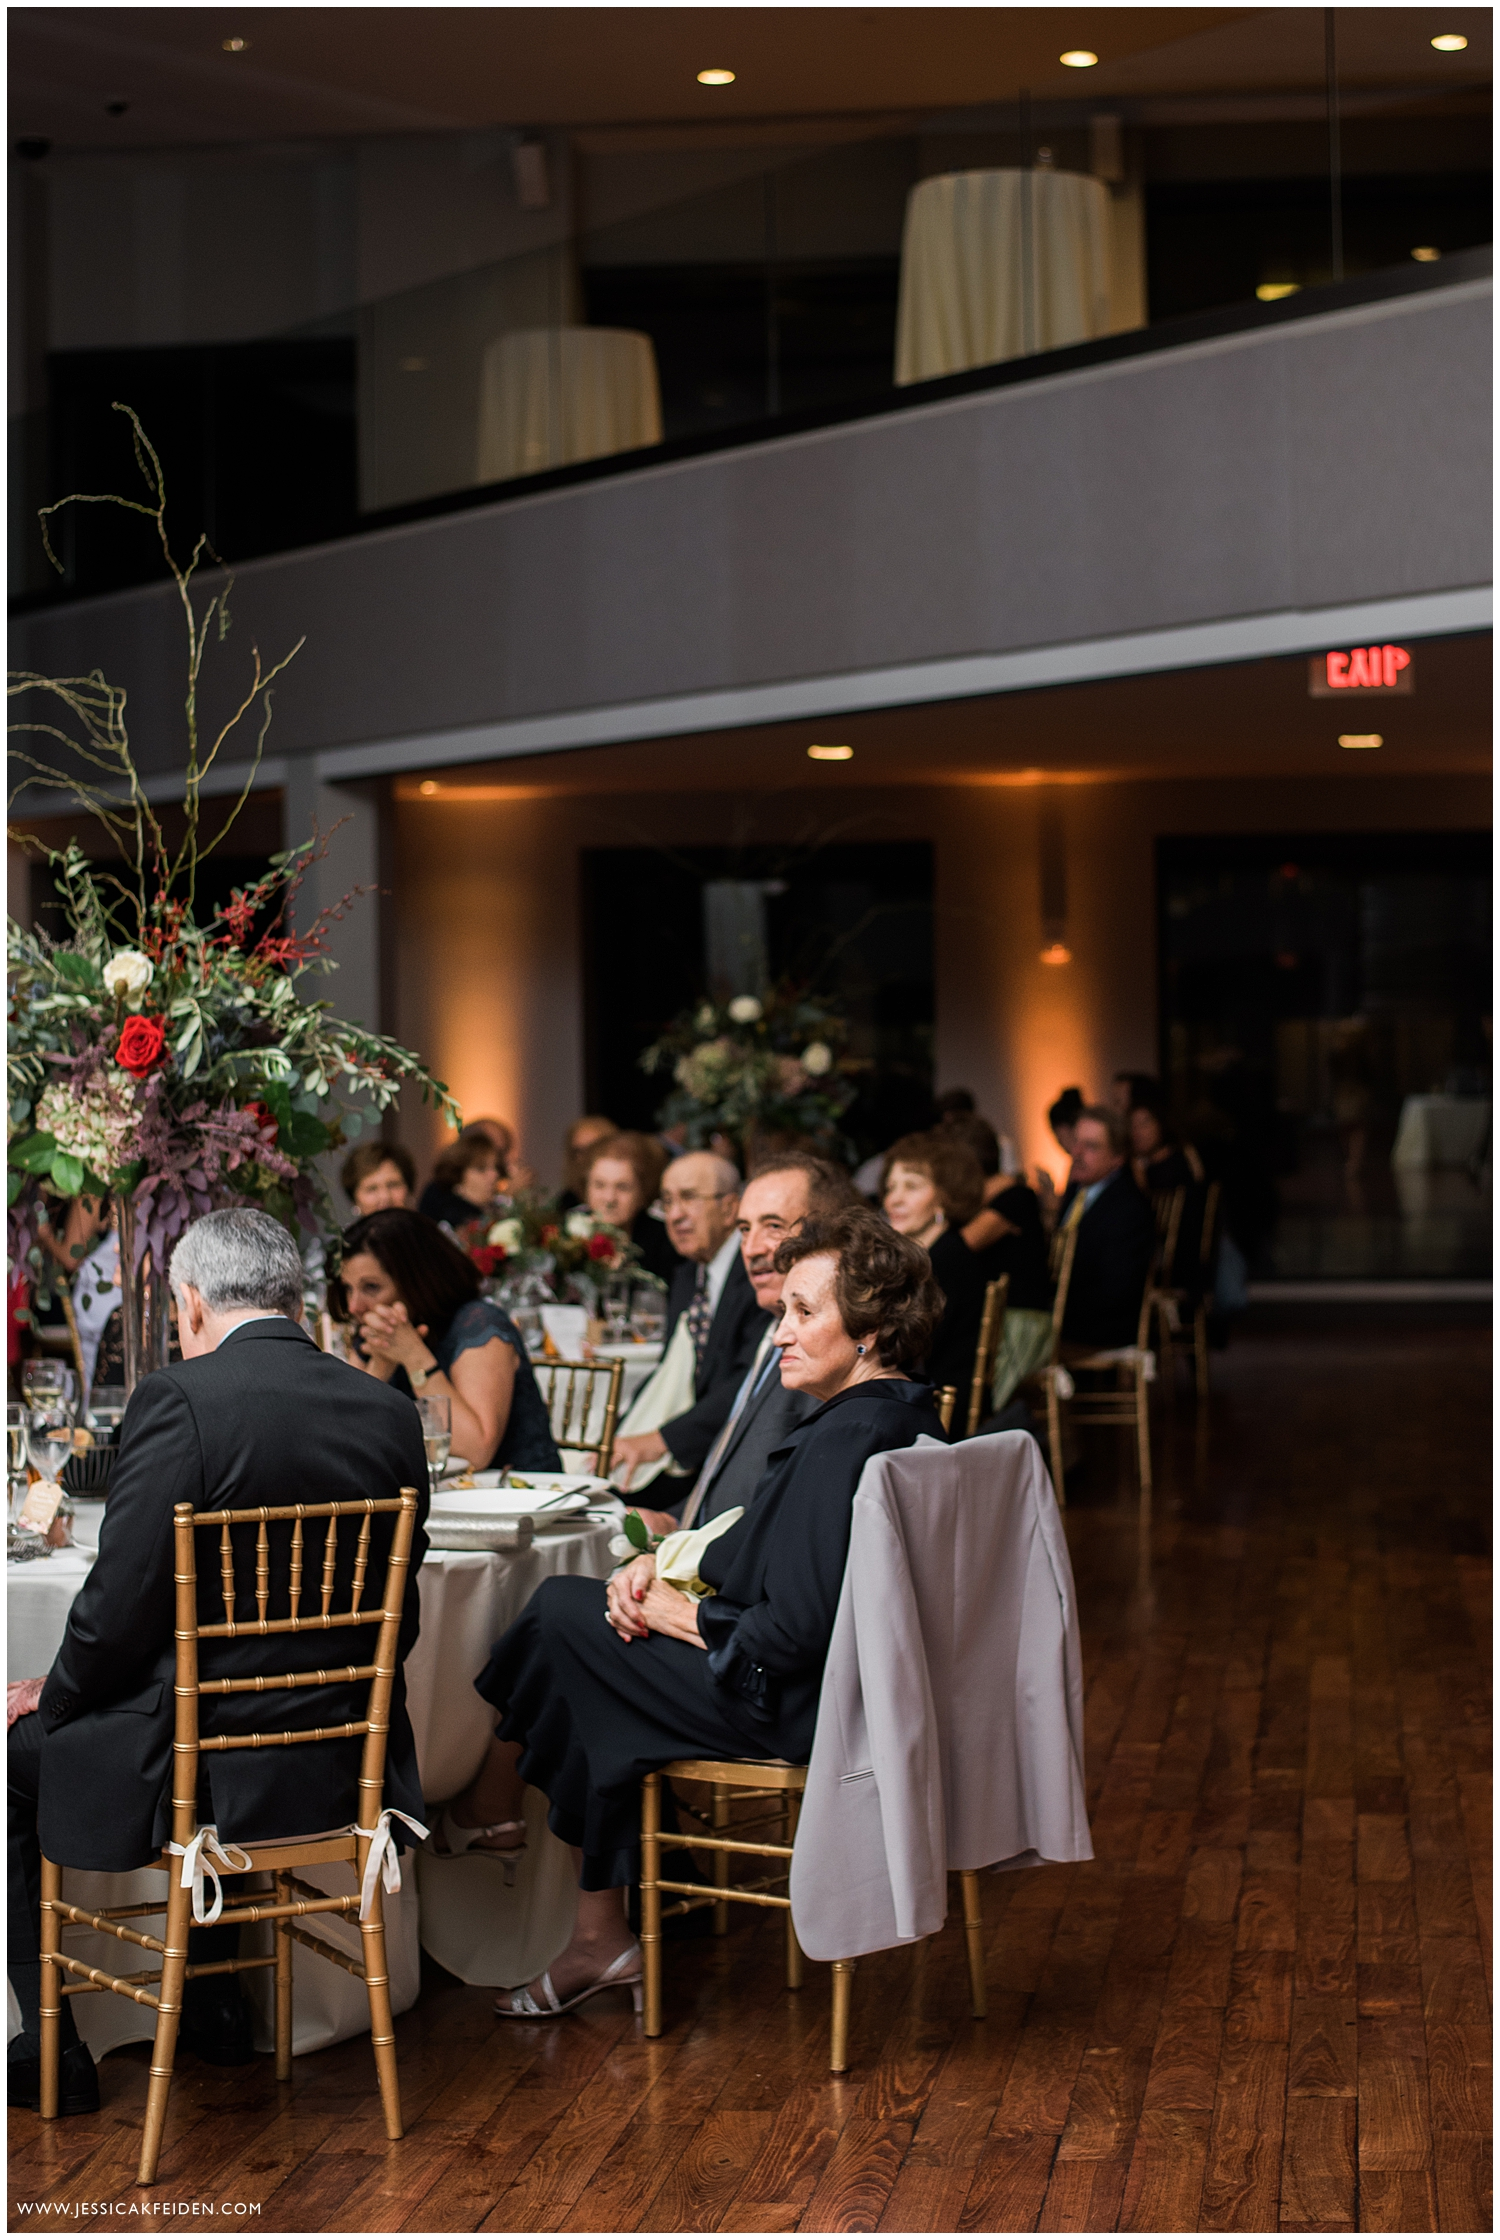 Jessica K Feiden Photography_The State Room Boston Wedding Photographer_0060.jpg